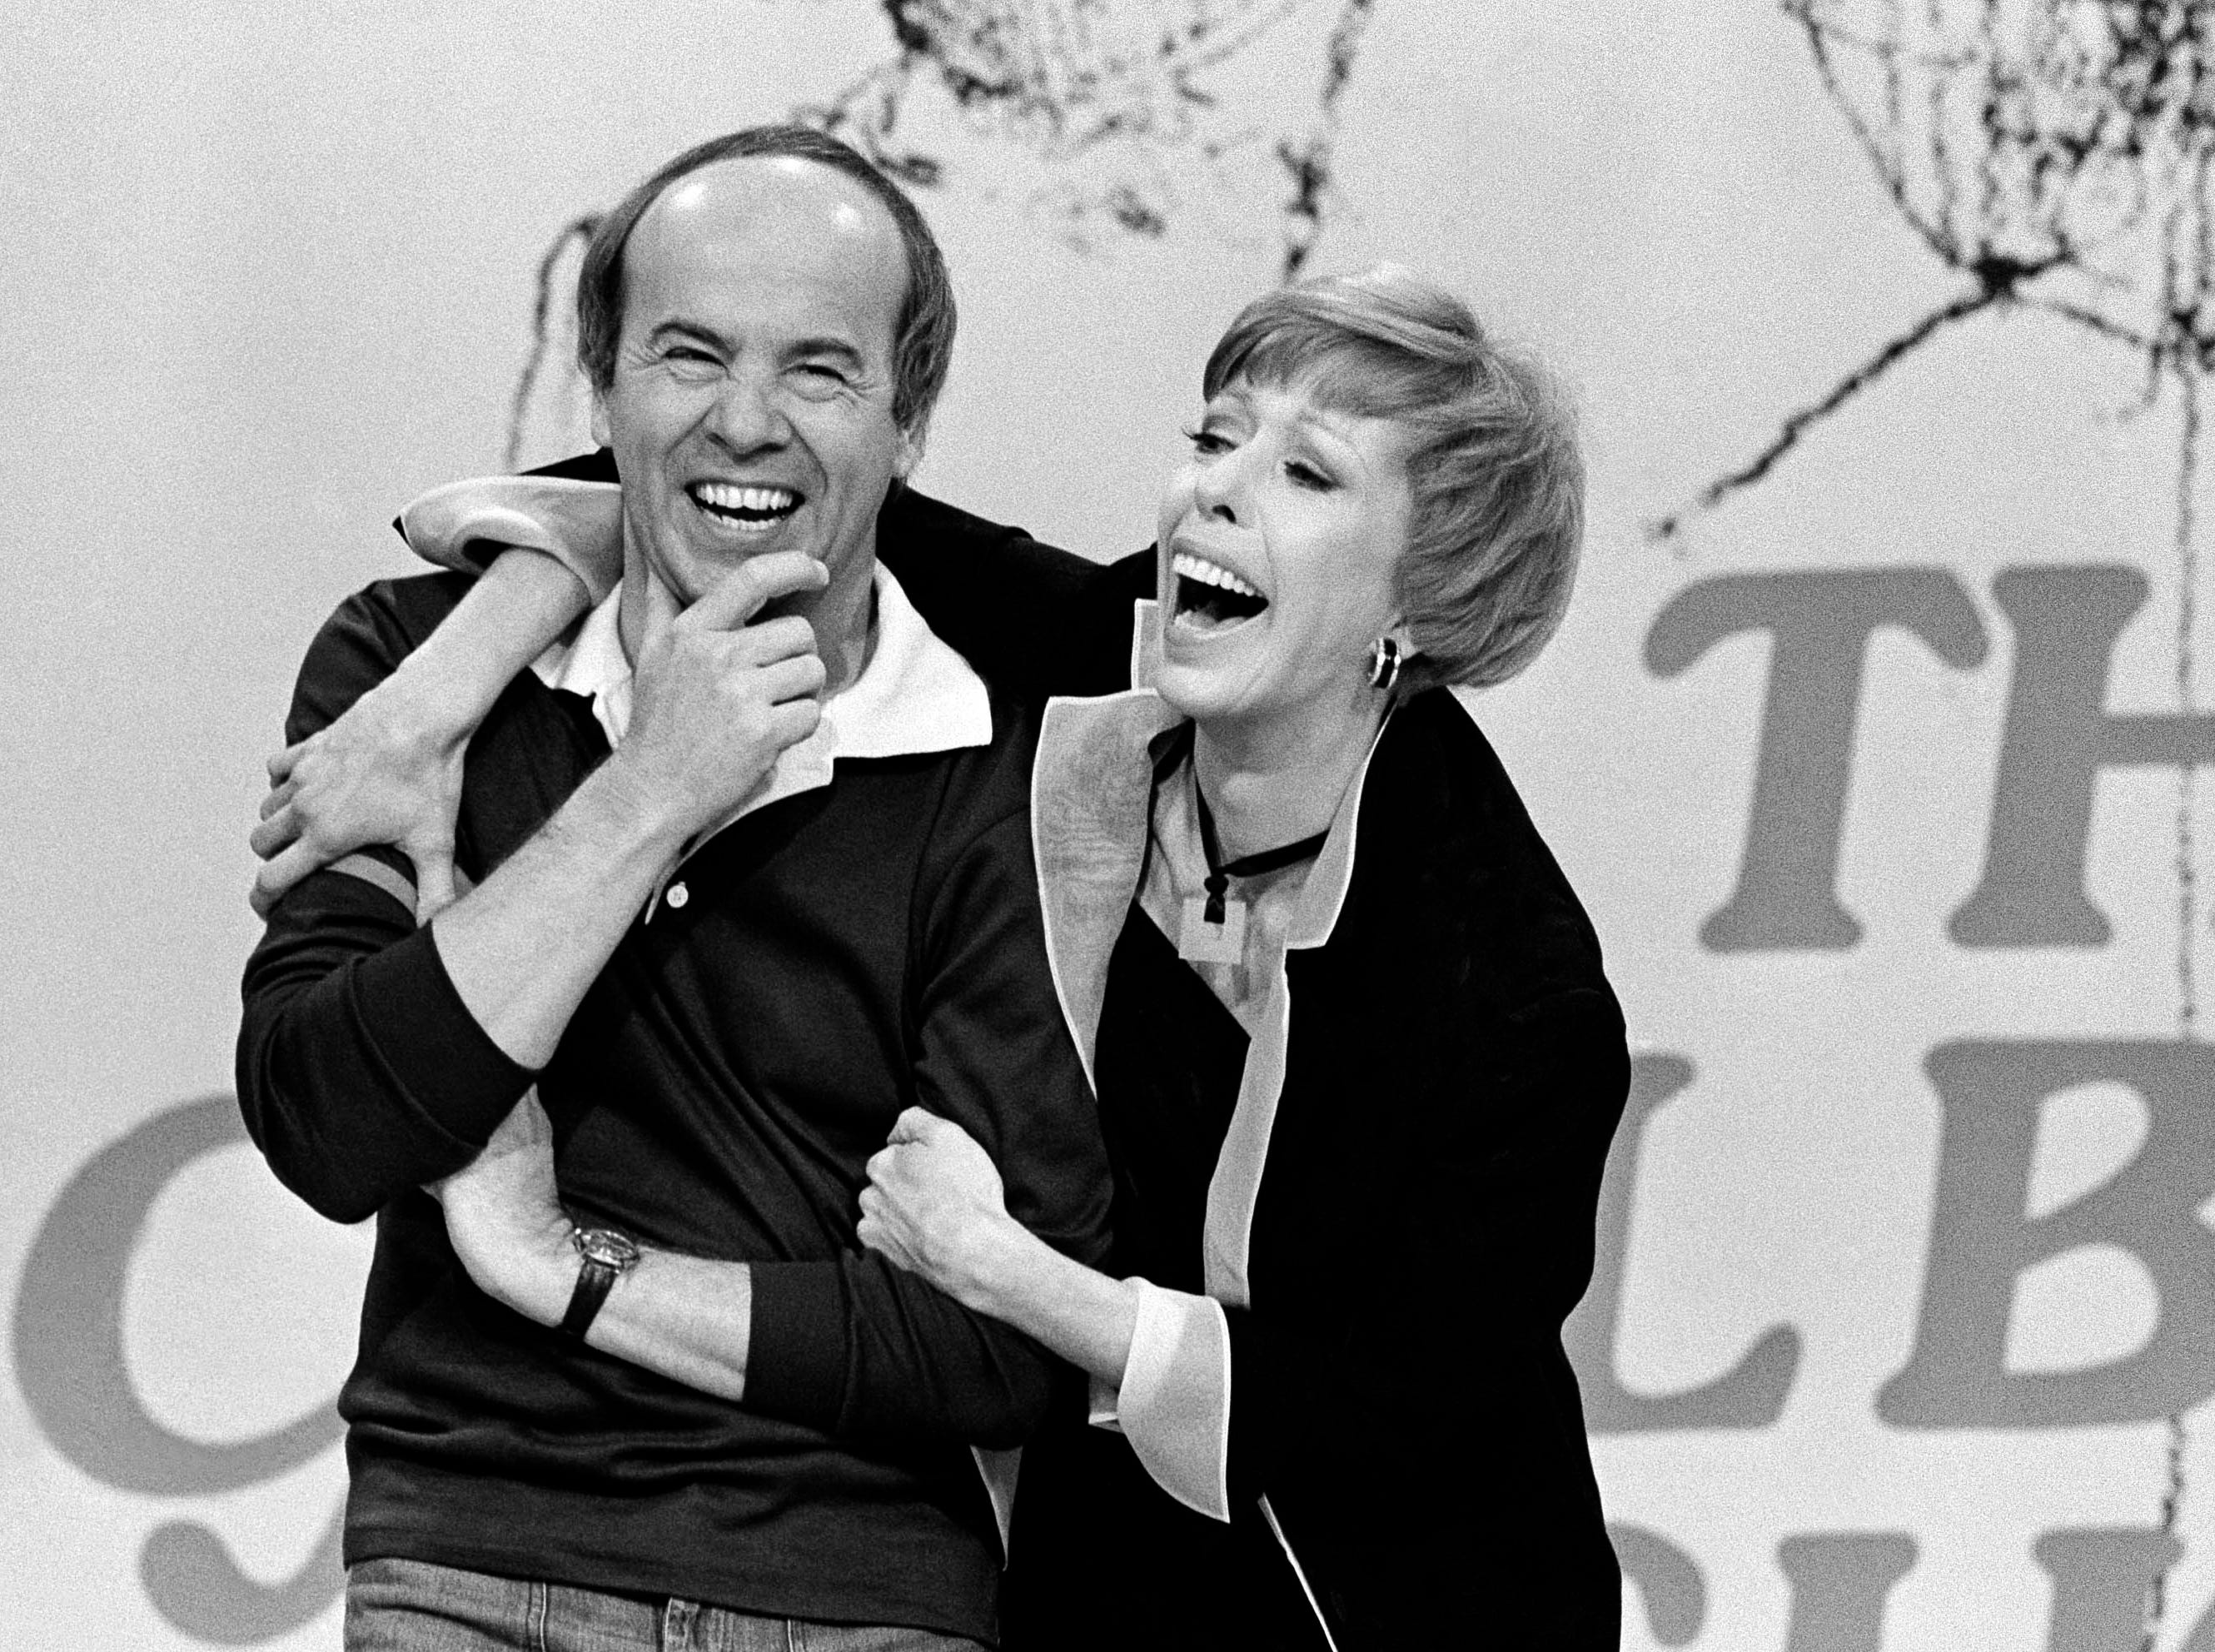 FILE - In this March 19, 1978 black-and-white file photo, Carol Burnett shares a laugh with Tim Conway during taping of her final show , in Los Angeles. Burnett, who honed her humor on Broadway and landed her own comedy show on television in 1967, will win the nationís top humor prize. The Kennedy Center for the Performing Arts announced Tuesday that Burnett will receive the Mark Twain Prize for American Humor on Oct. 20 in Washington. A gala performance featuring top names in comedy will be taped and broadcast nationally Oct. 30 on PBS.  (AP Photo/ George Brich, File) ORG XMIT: WX202